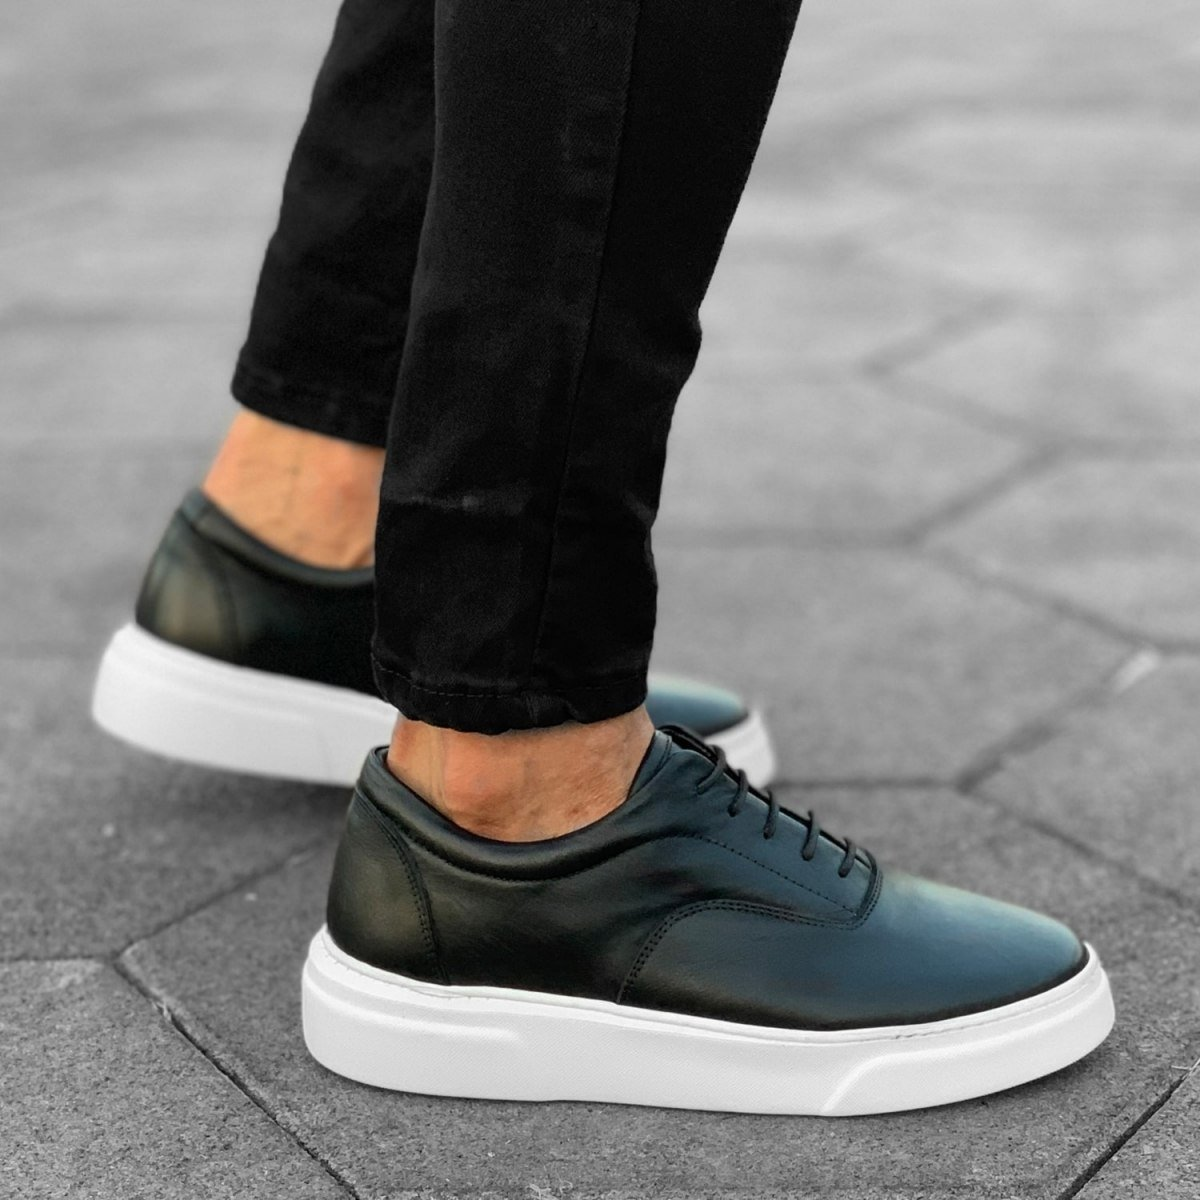 Premium Leather Casual Sneakers in Black White Mv Premium Brand - 3